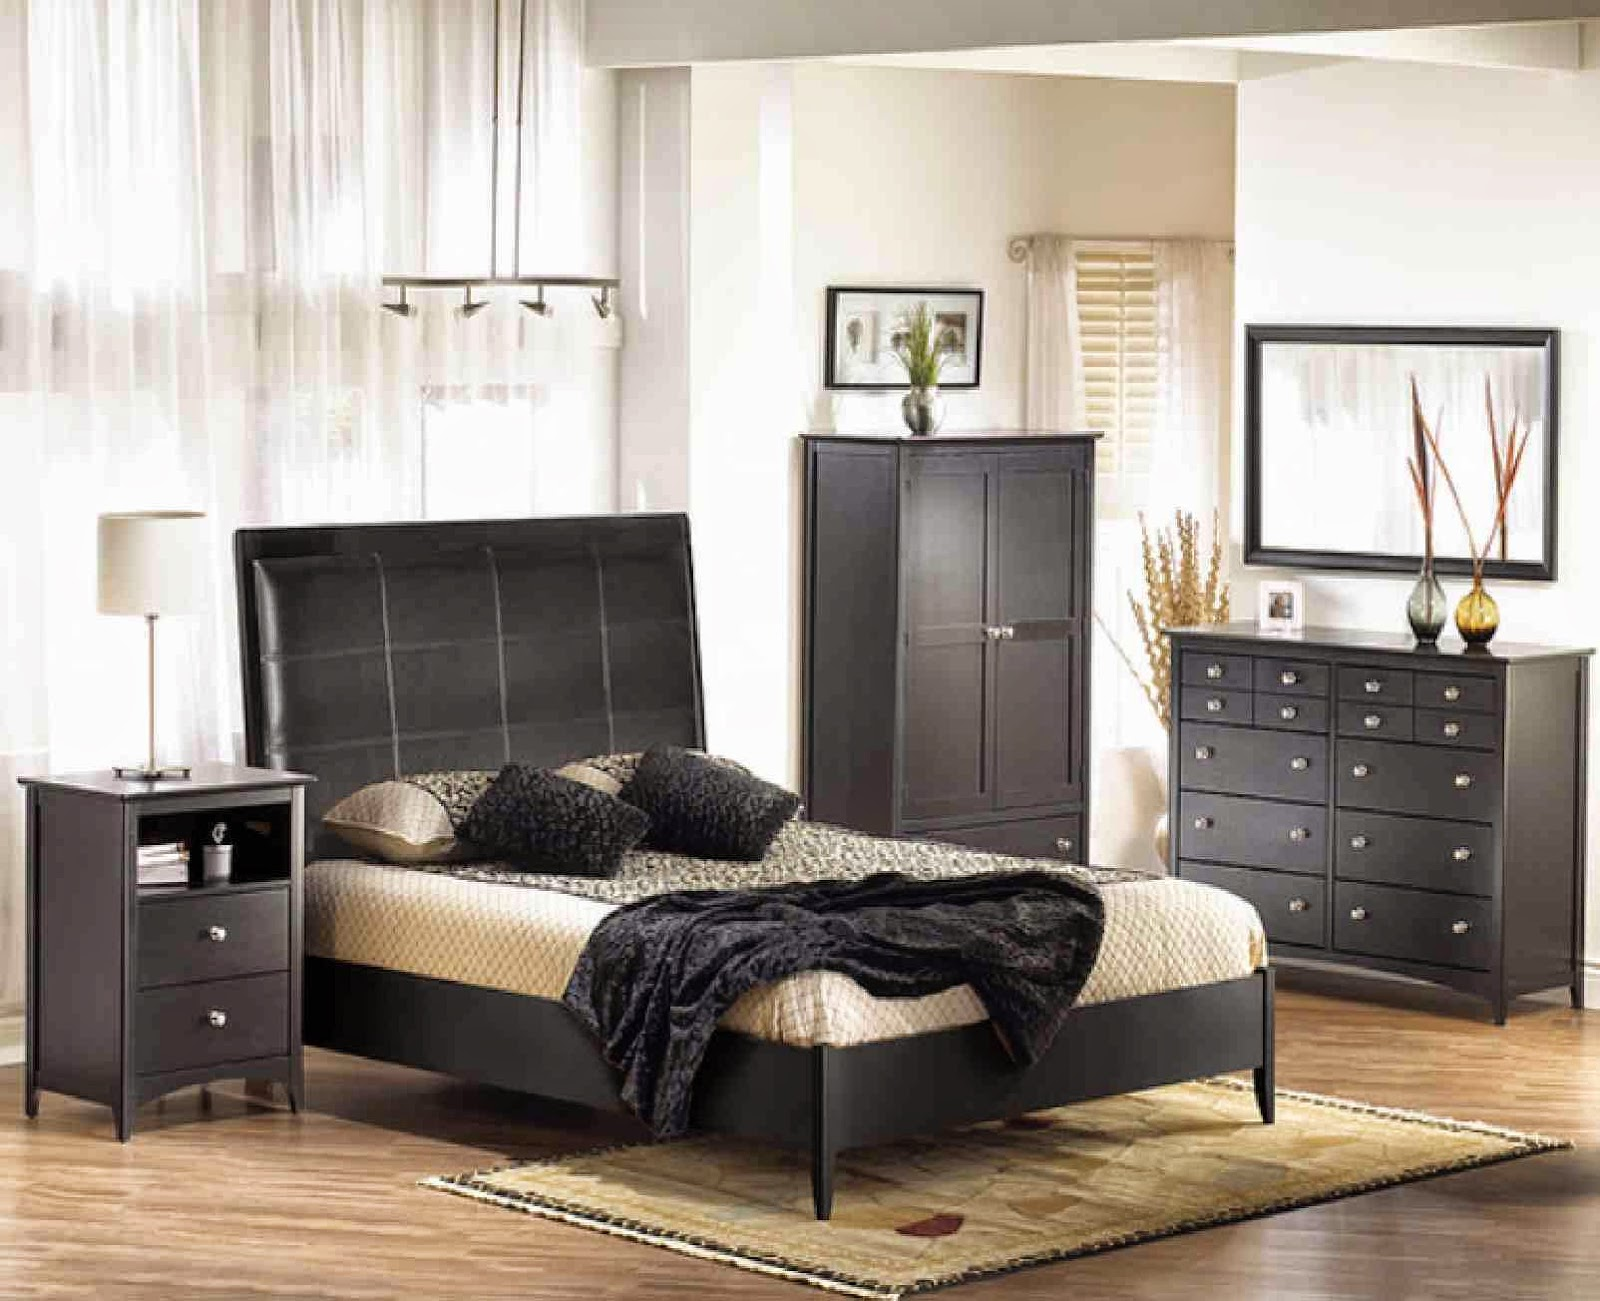 Brown And Black Bedroom Furniture